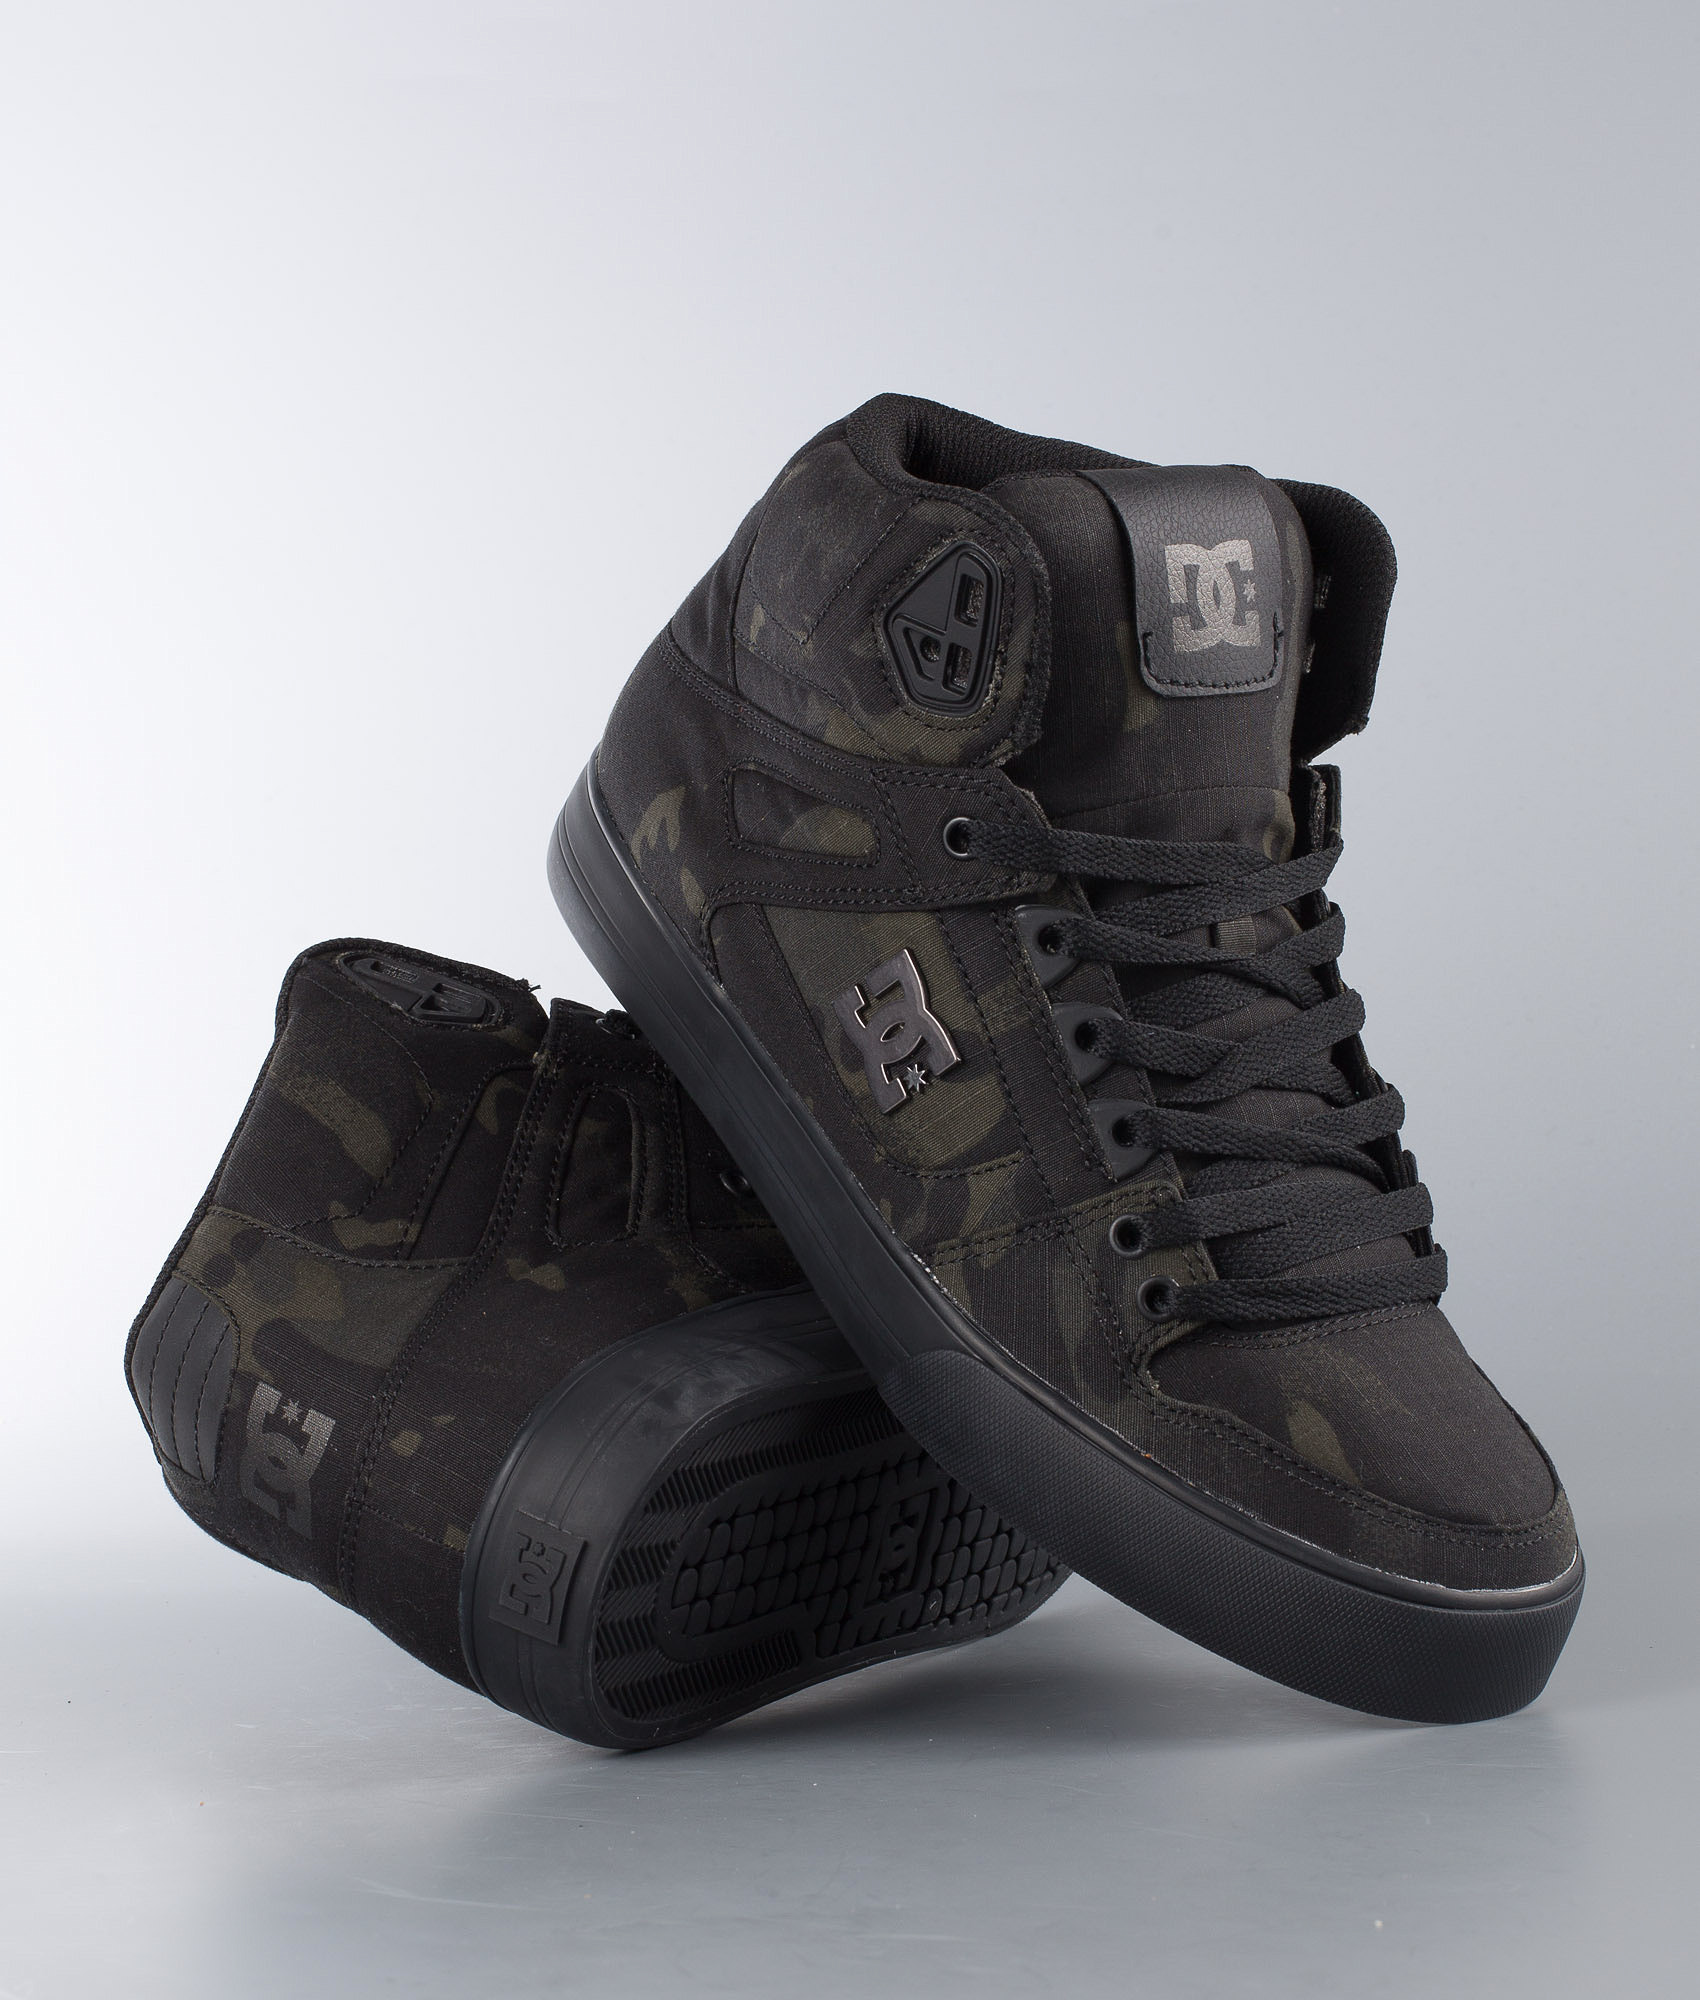 8bb916e88c DC Pure High-Top Wc Tx Se Shoes Camo - Ridestore.com